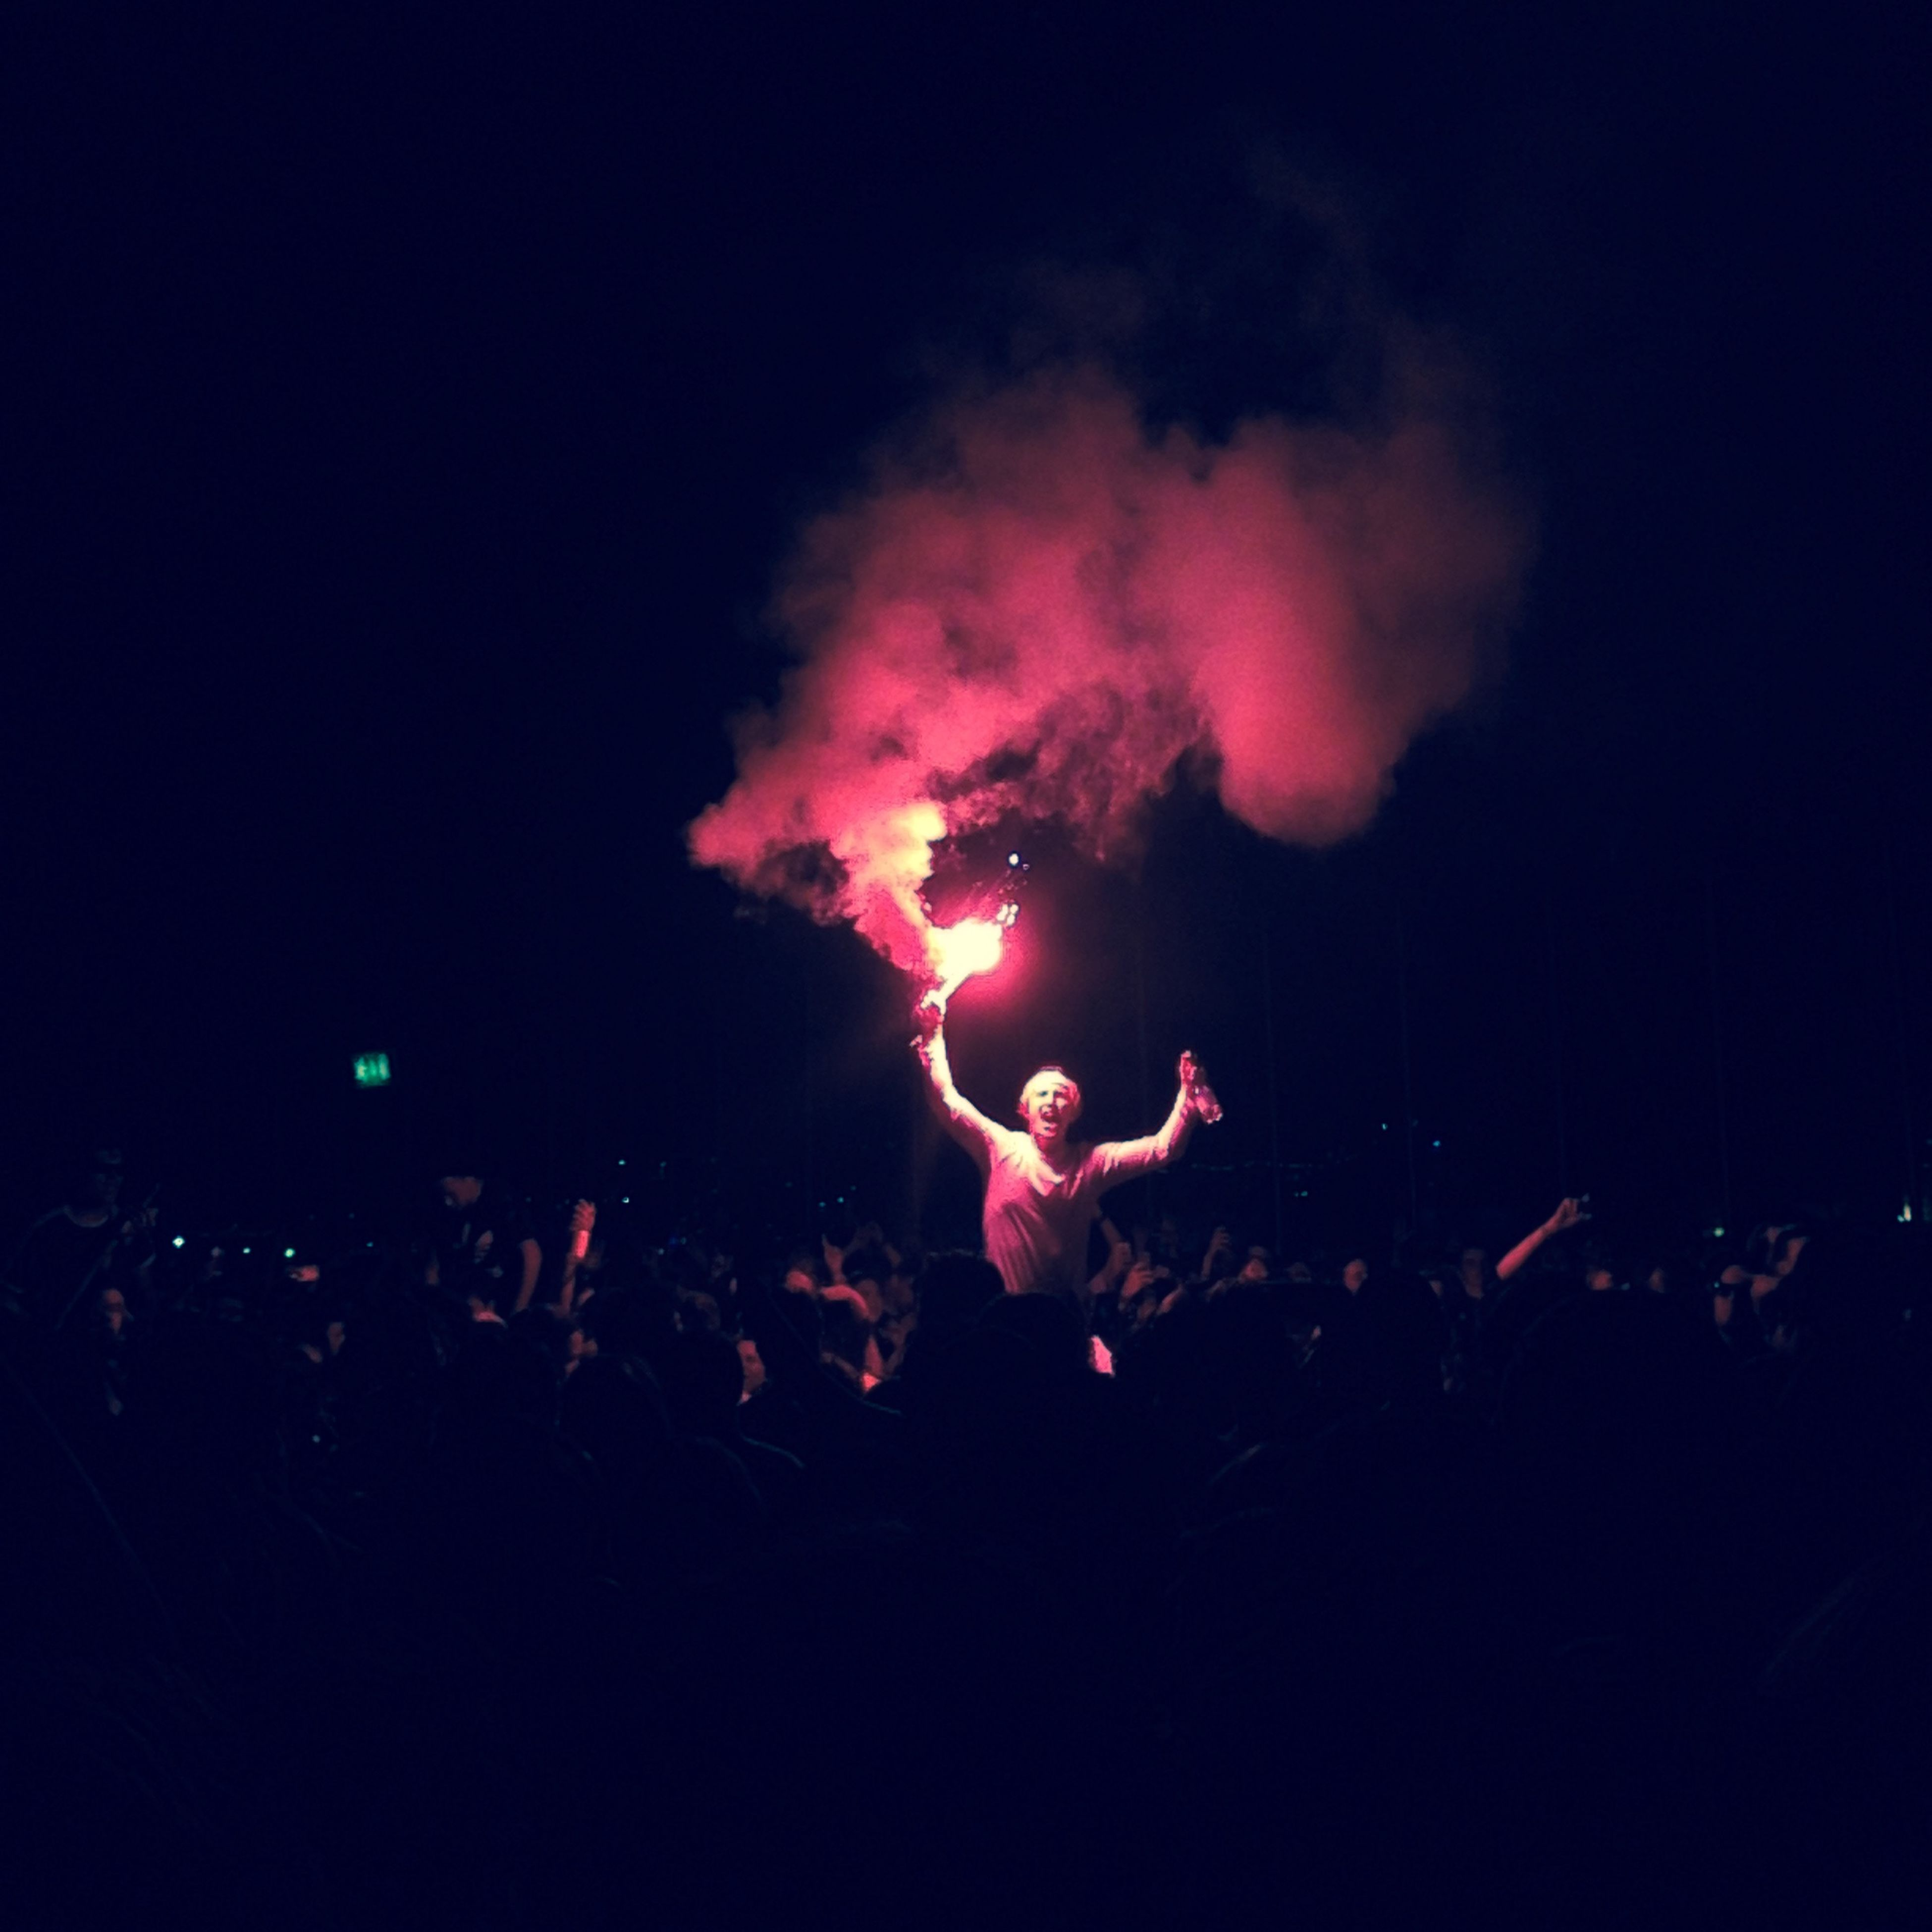 night, sky, silhouette, illuminated, large group of people, arts culture and entertainment, event, low angle view, celebration, light - natural phenomenon, crowd, smoke - physical structure, fun, enjoyment, outdoors, glowing, cloud - sky, motion, performance, excitement